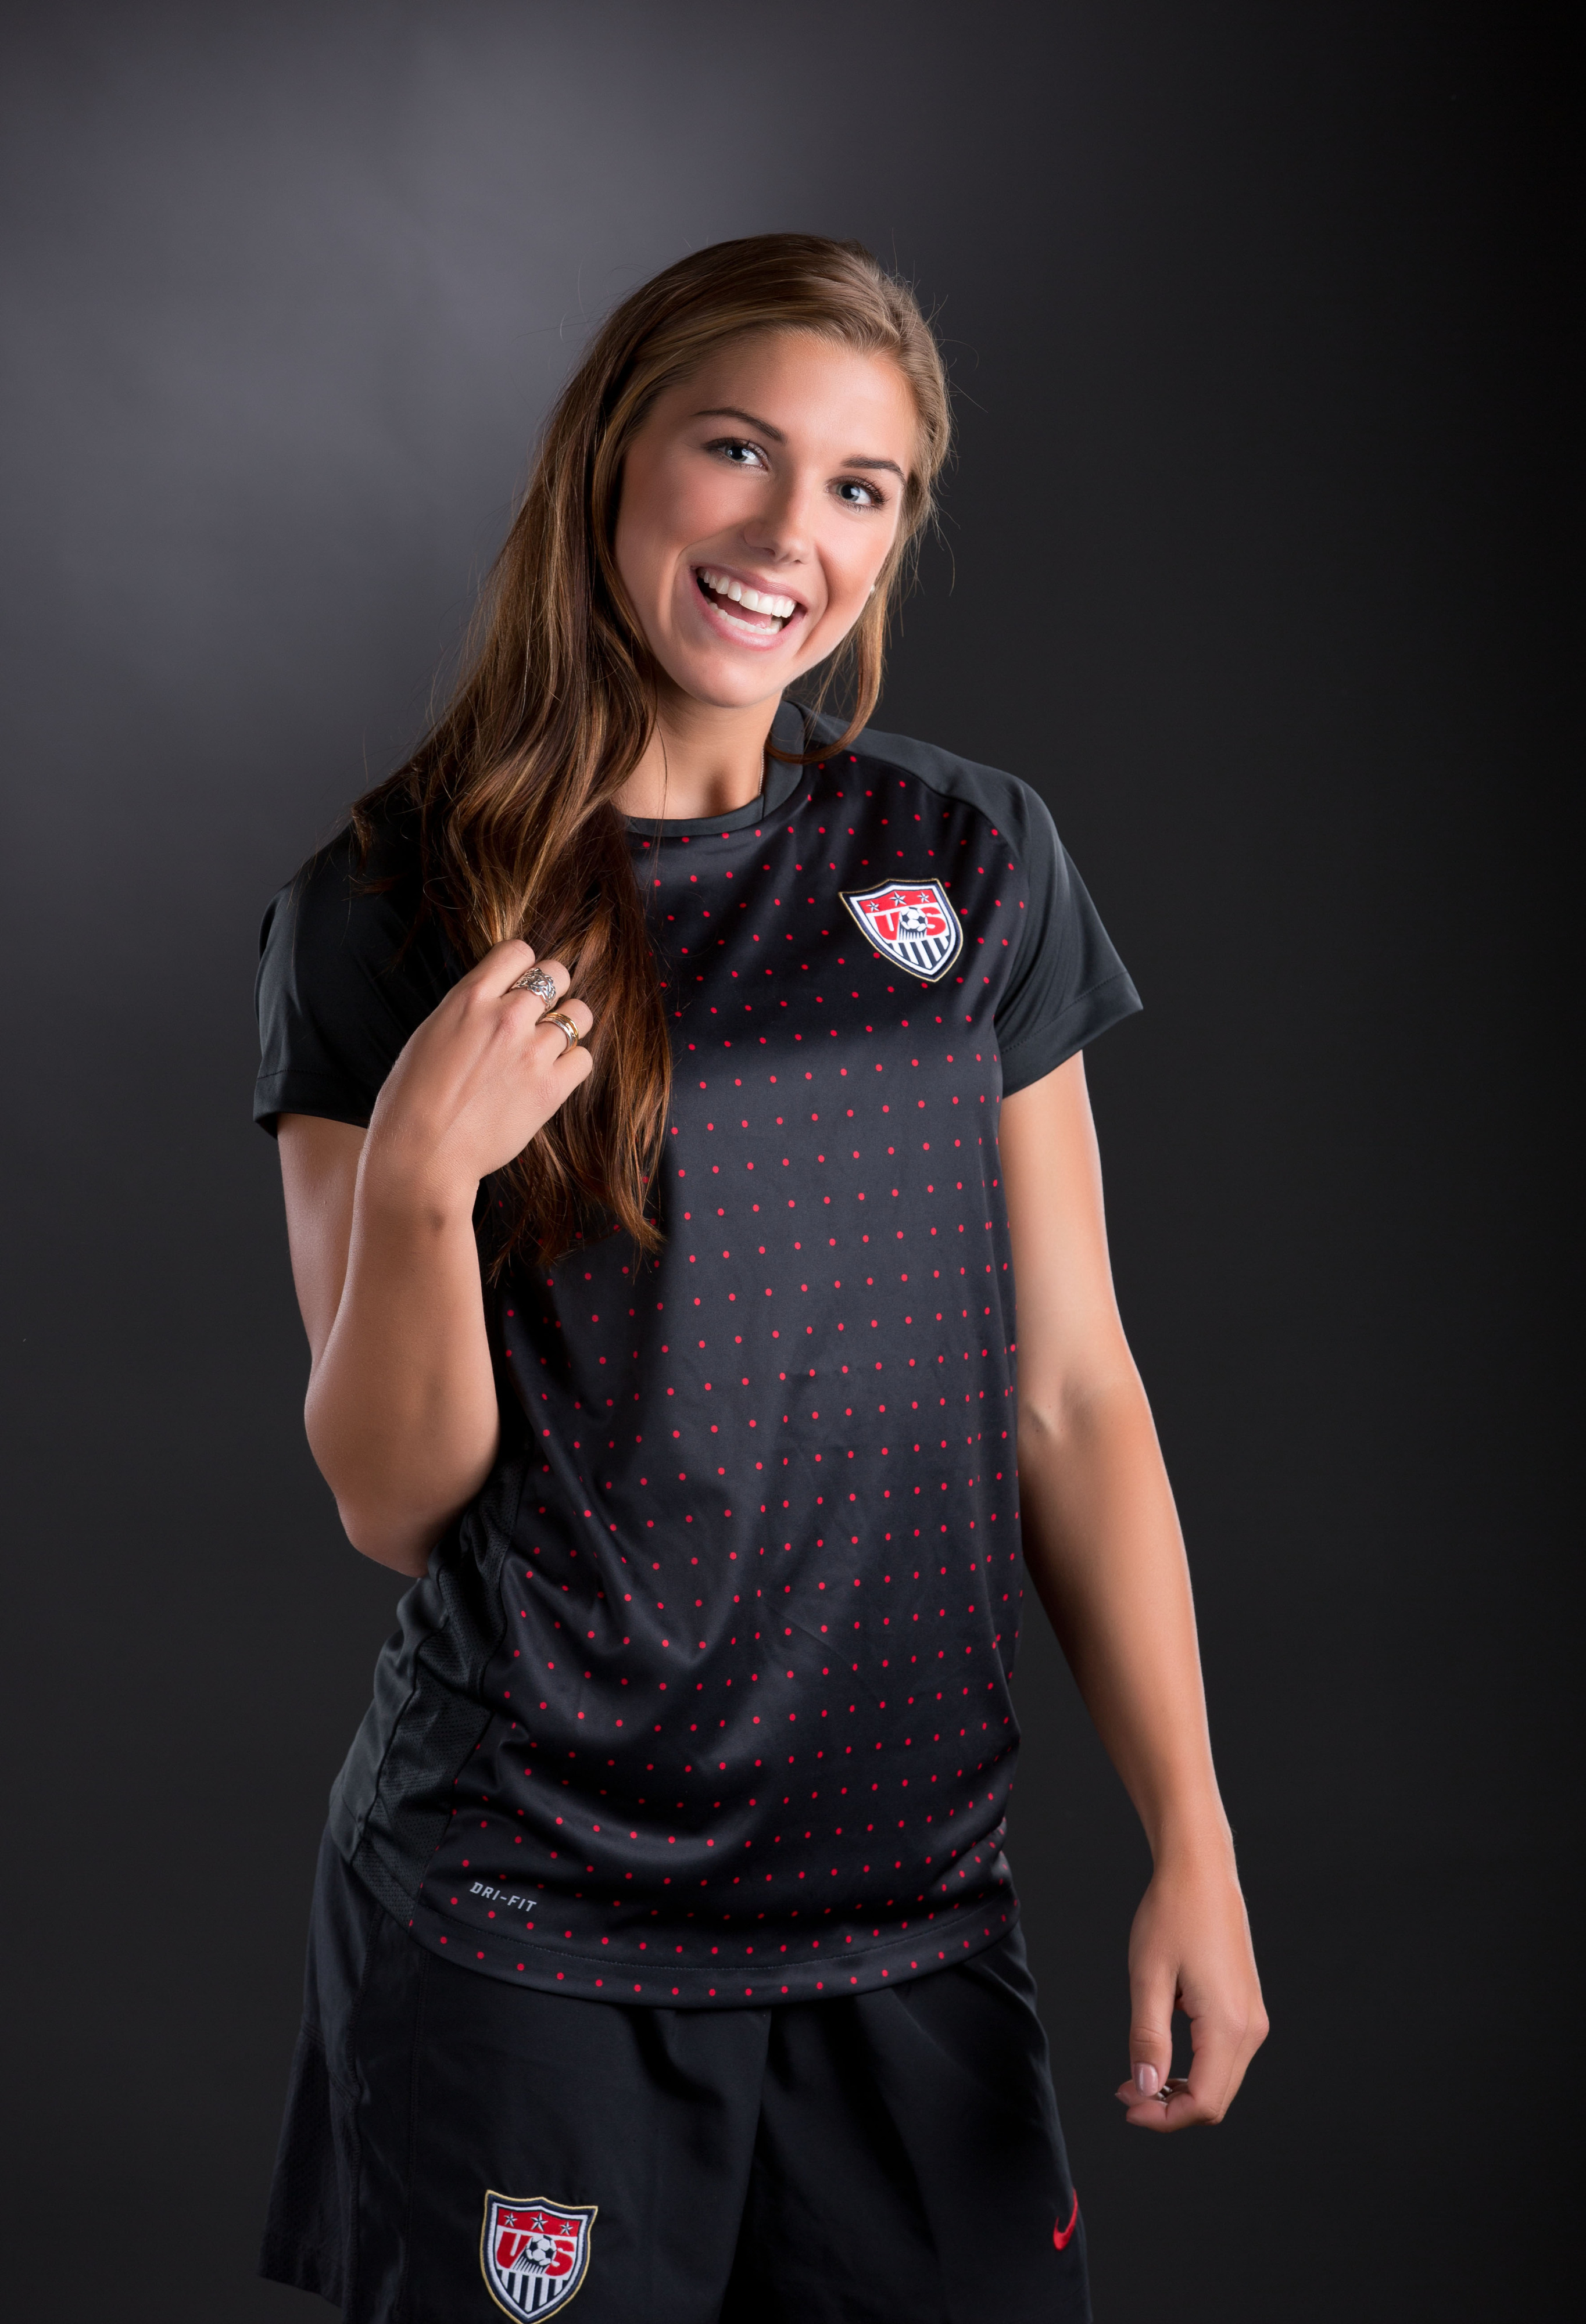 Alex Morgan, one of 5 Golden Bears in action in Day 10, while looking friendly here can be deadly on the soccer pitch. Find out how our neighbors to the North (Canada) think of her now after the jump.